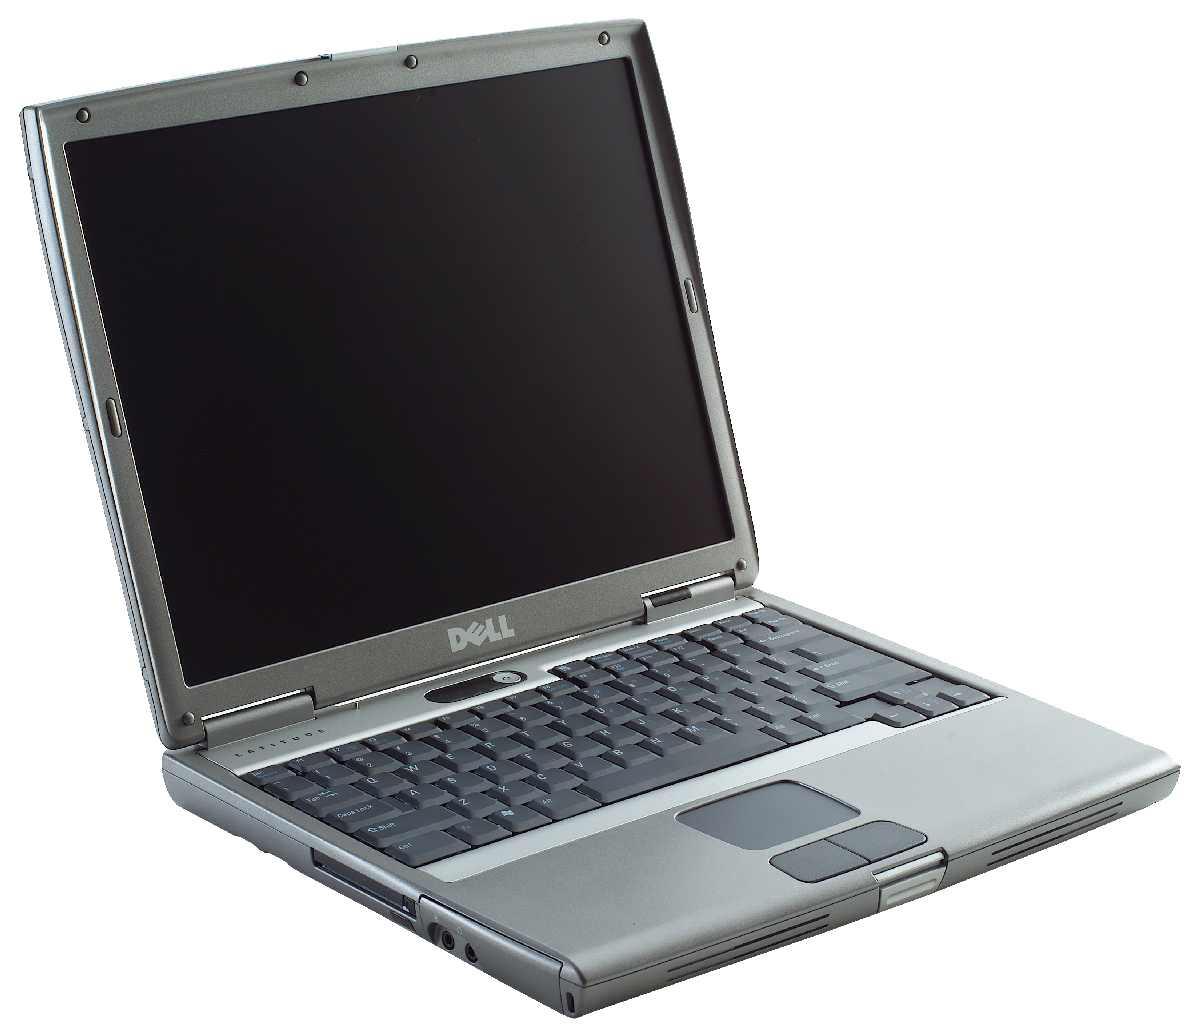 Latitude D600 / 1,4GHz / 1,25GB / 100GB HDD / WINXP